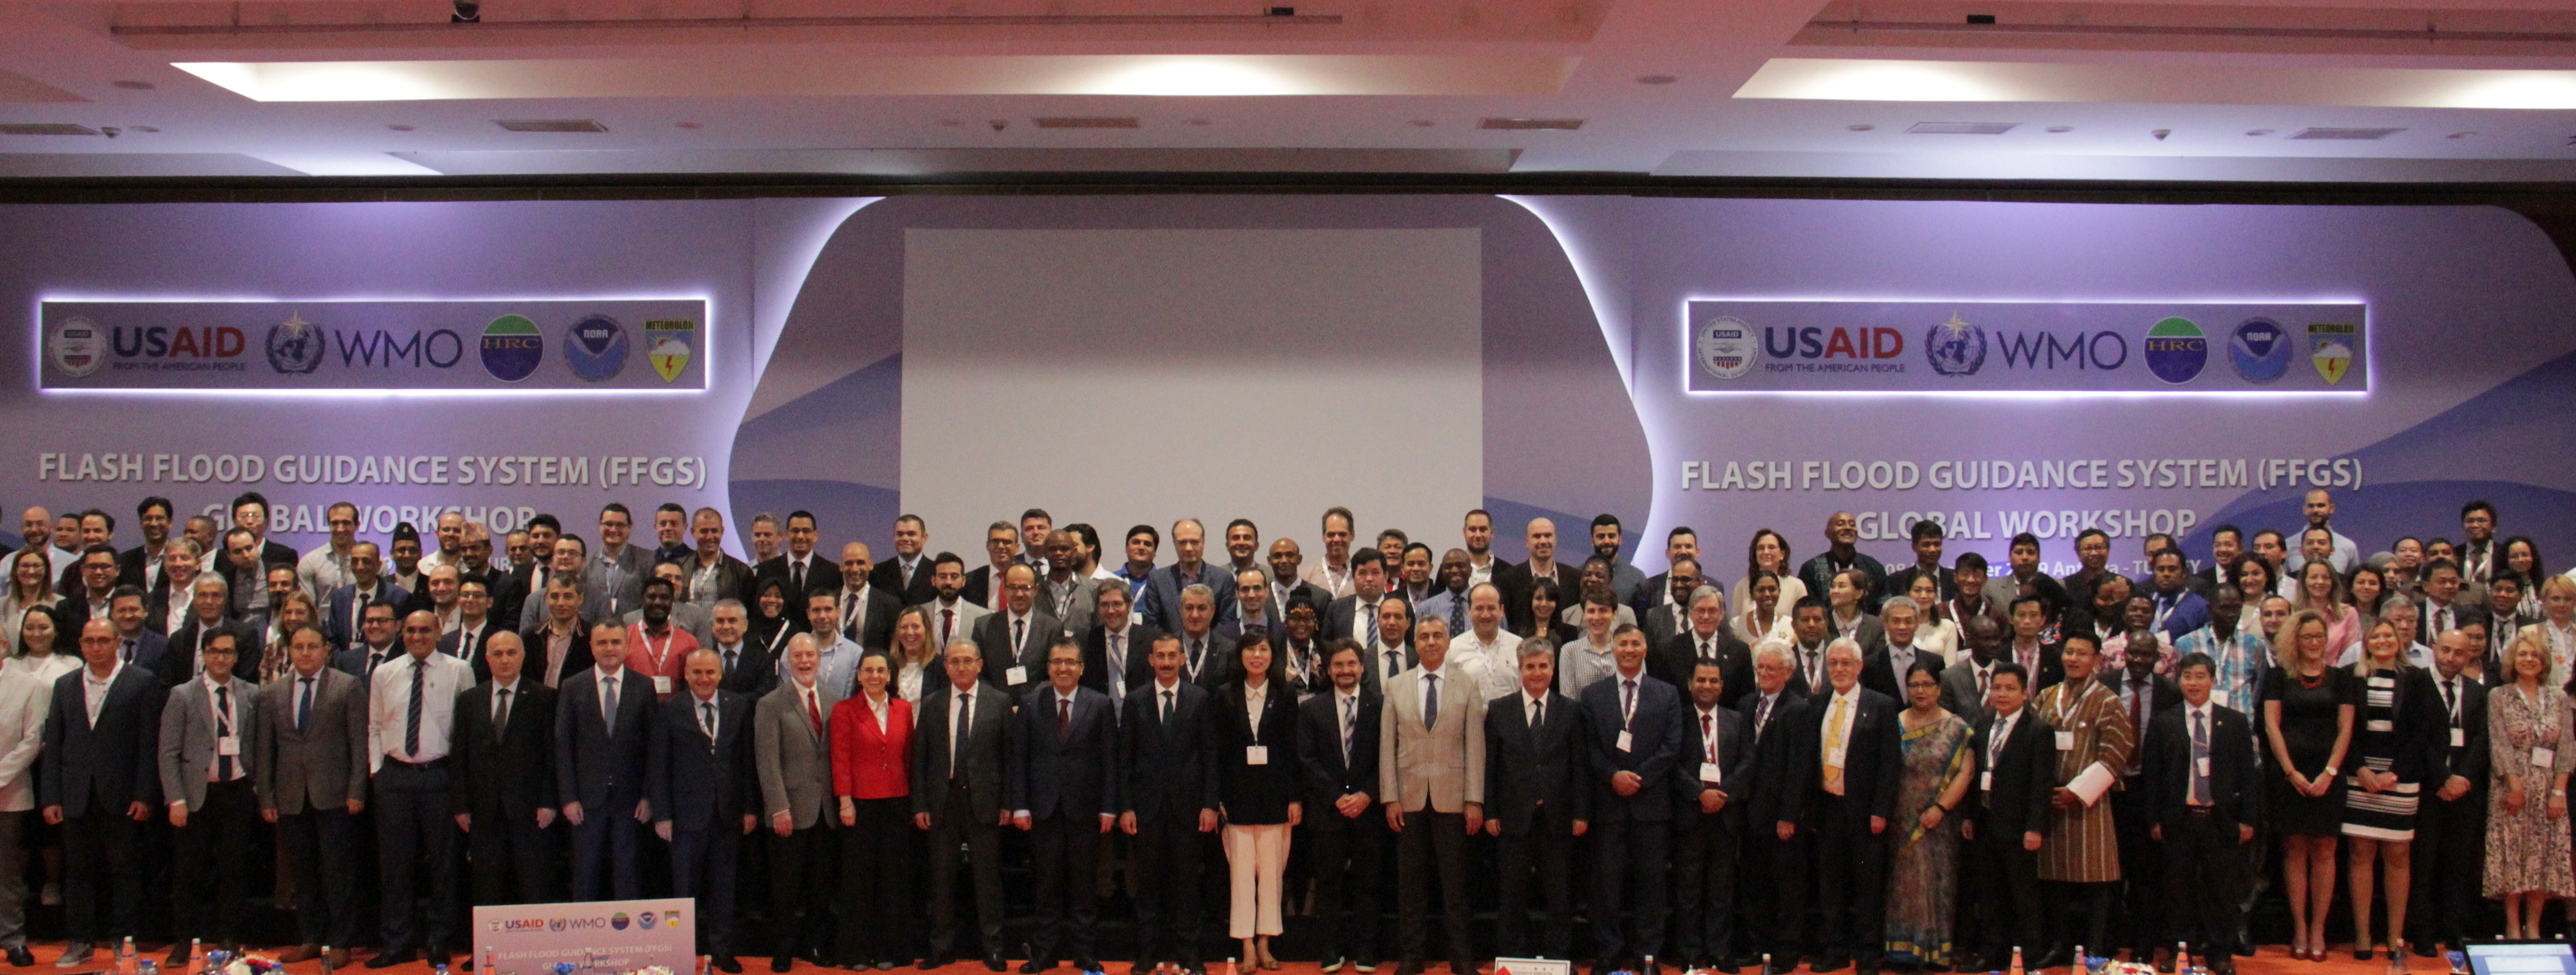 FFGS Global Workshop 2019 Group picture